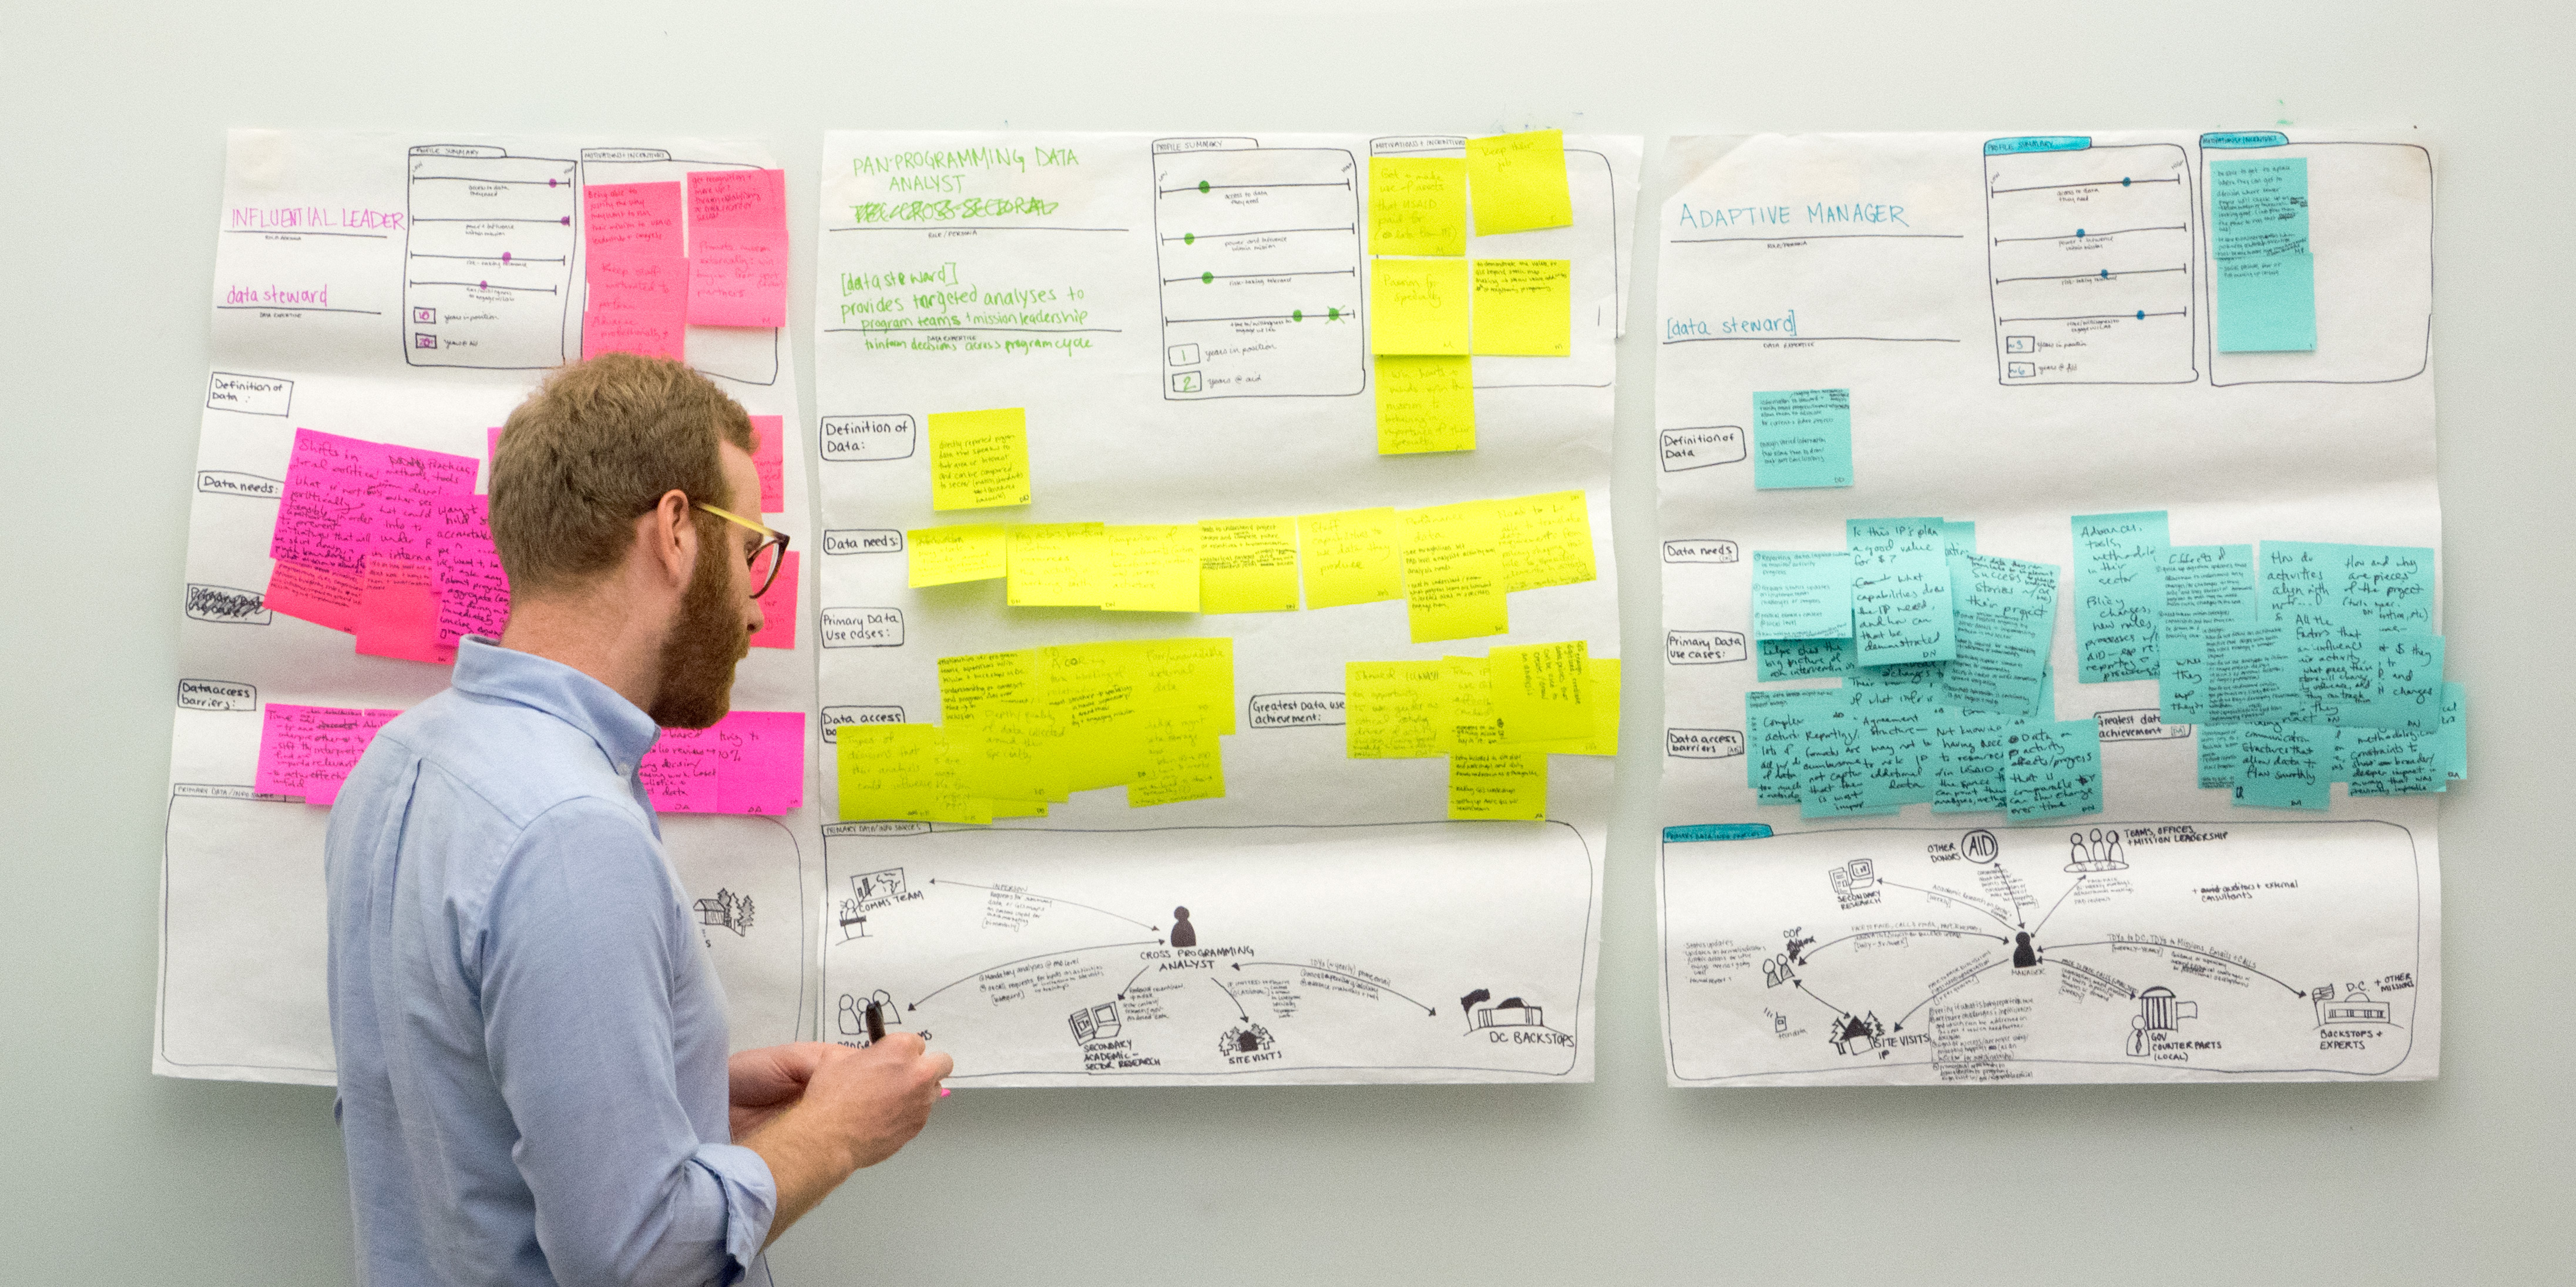 researcher reviews data in a user persona